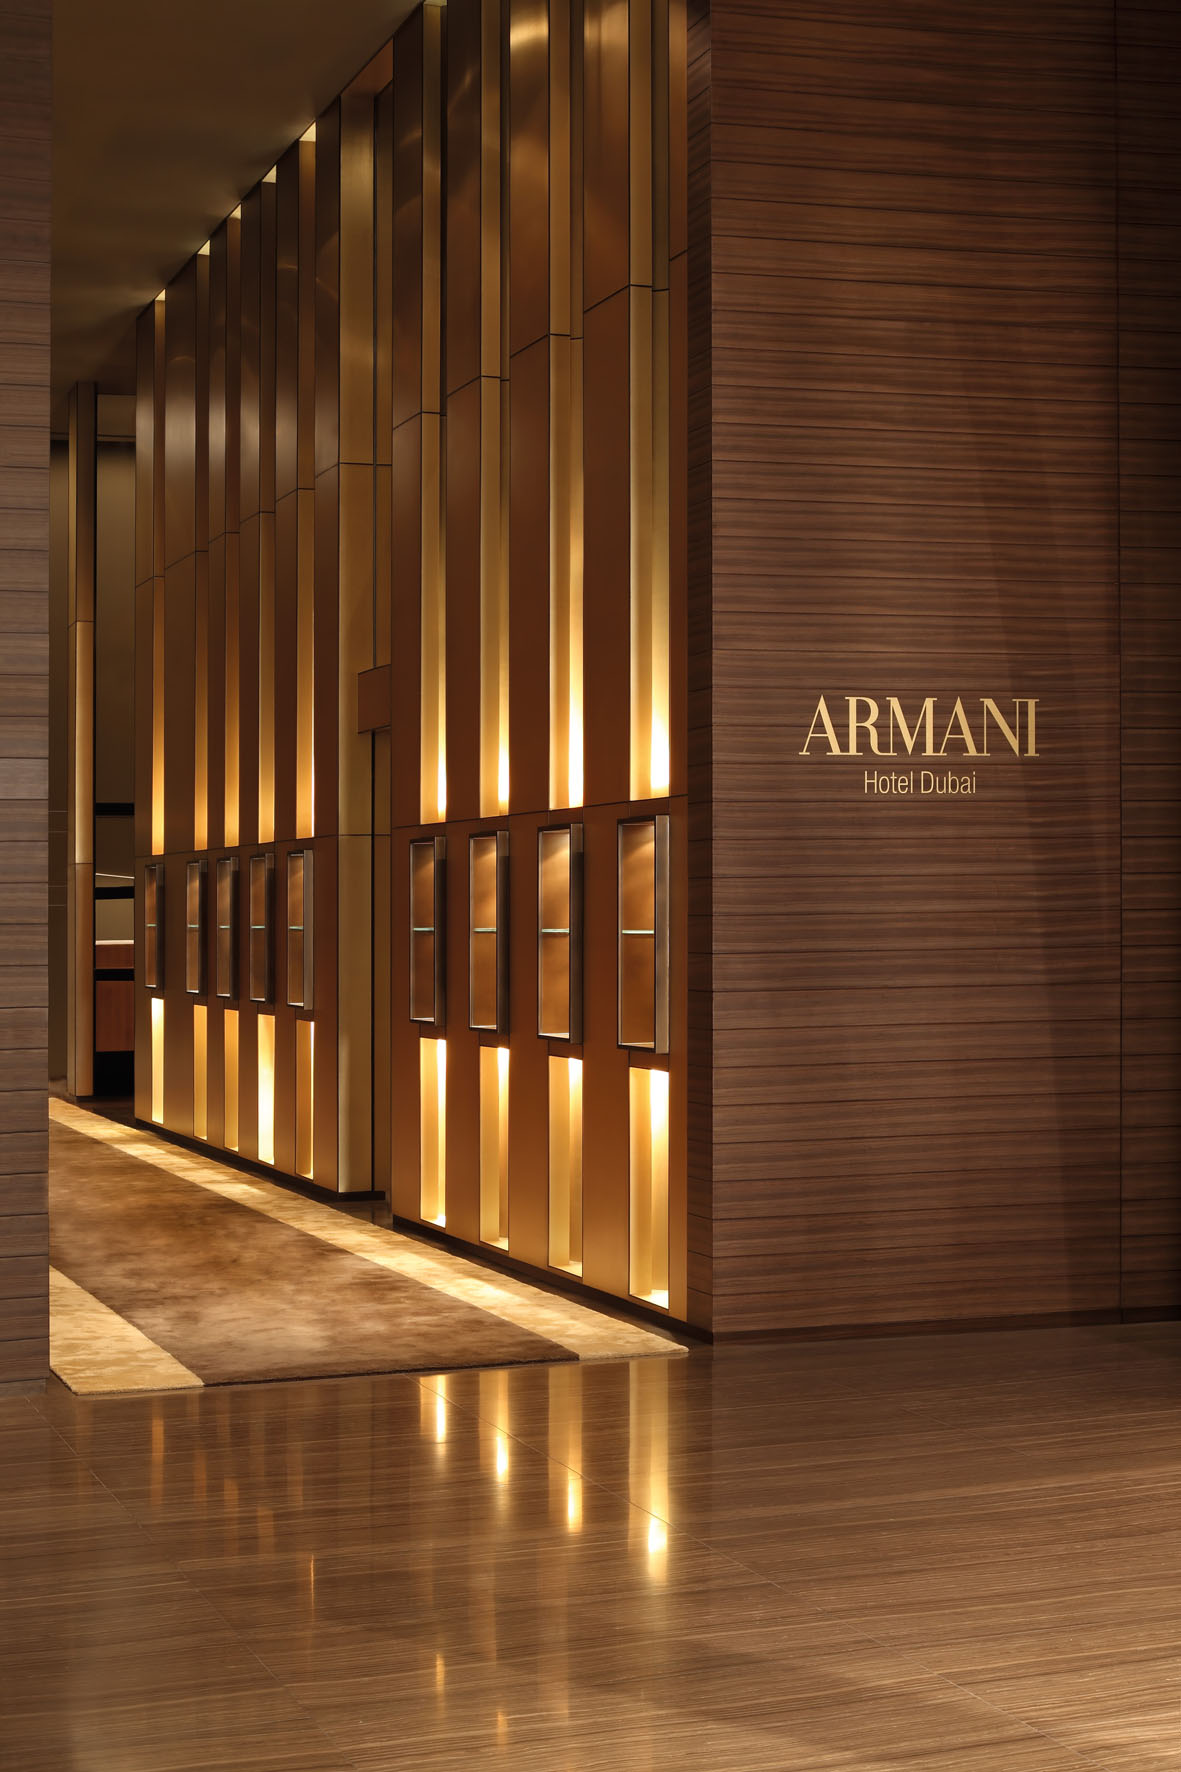 World s first armani hotel unveiled in burj khalifa dubai Armani hotel in burj khalifa